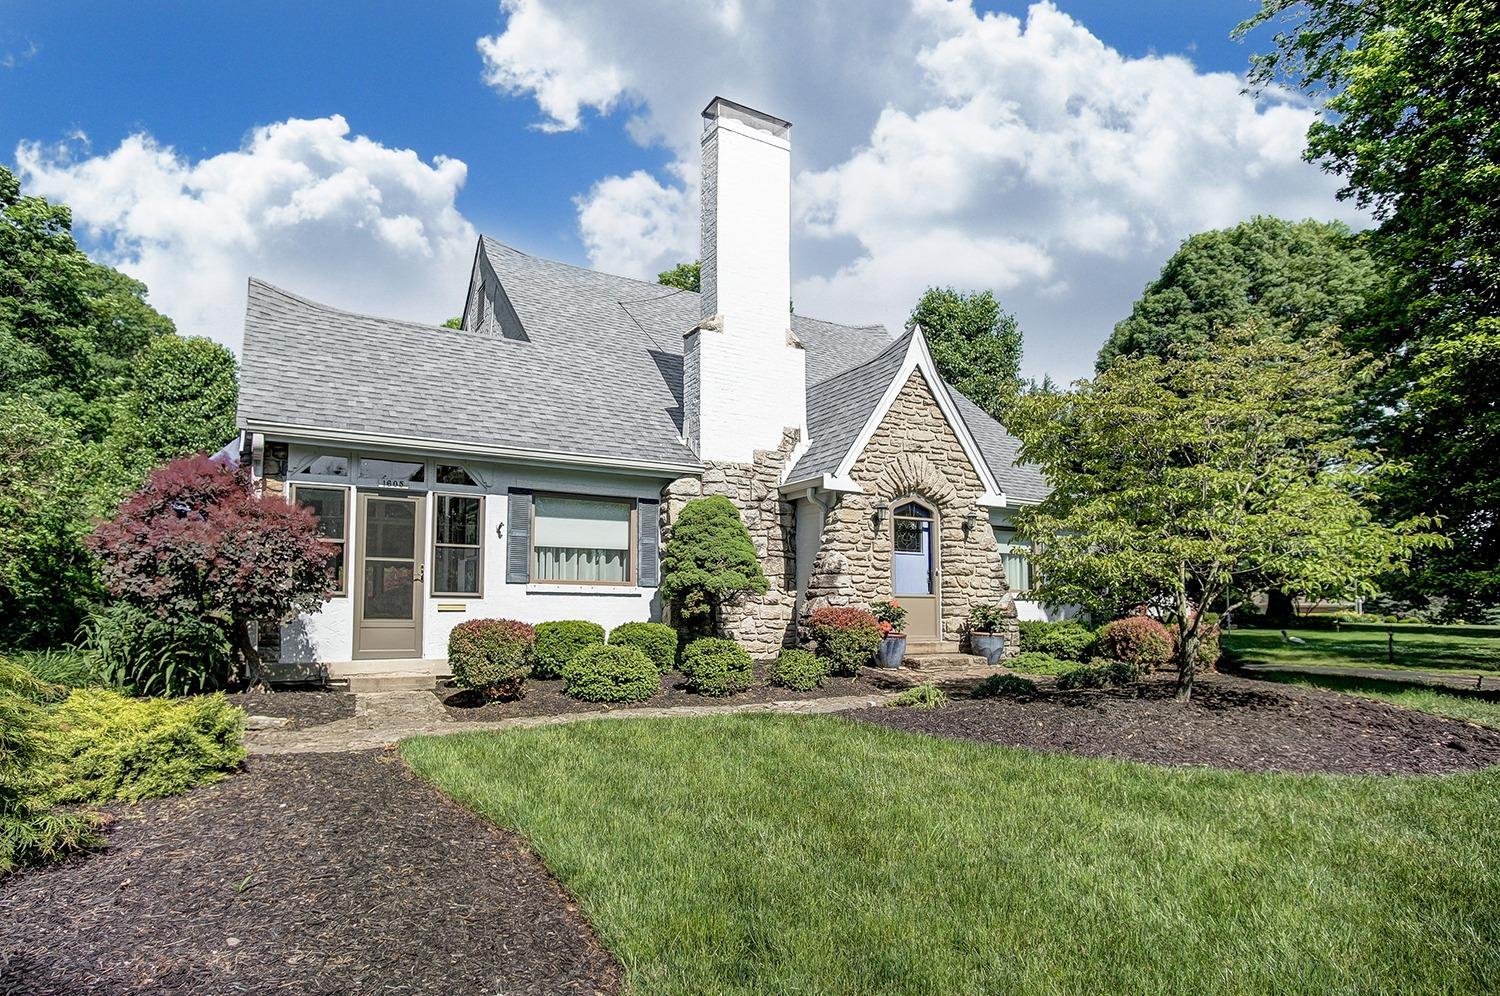 1605 Anderson Ferry Green Twp. - Hamilton Co., OH